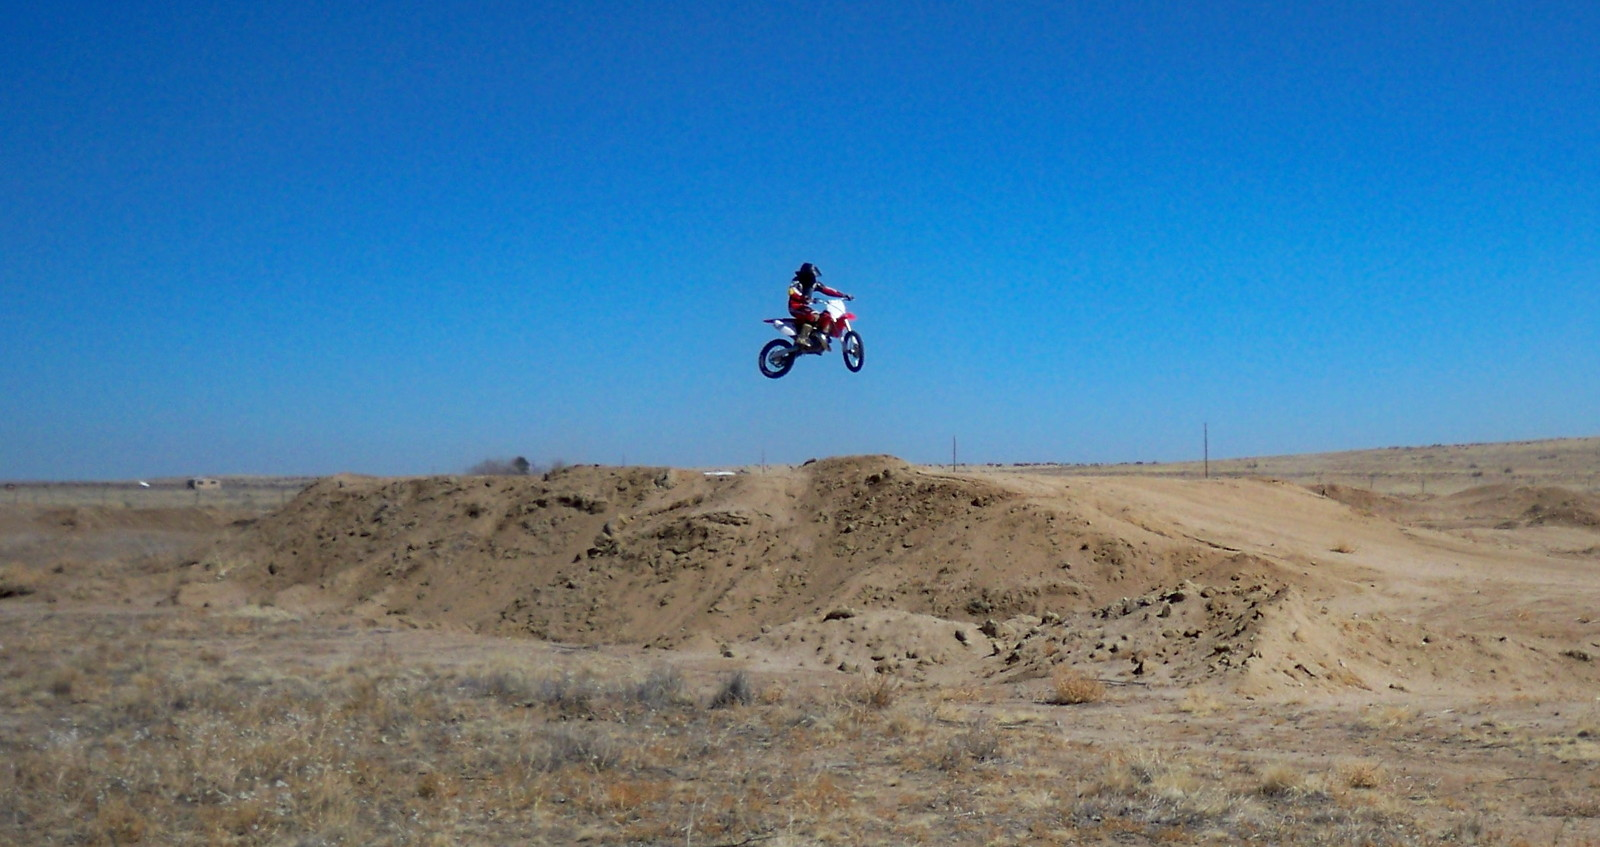 At Olympic MX track (Cygnus's track) - jtomasik - Motocross Pictures - Vital MX